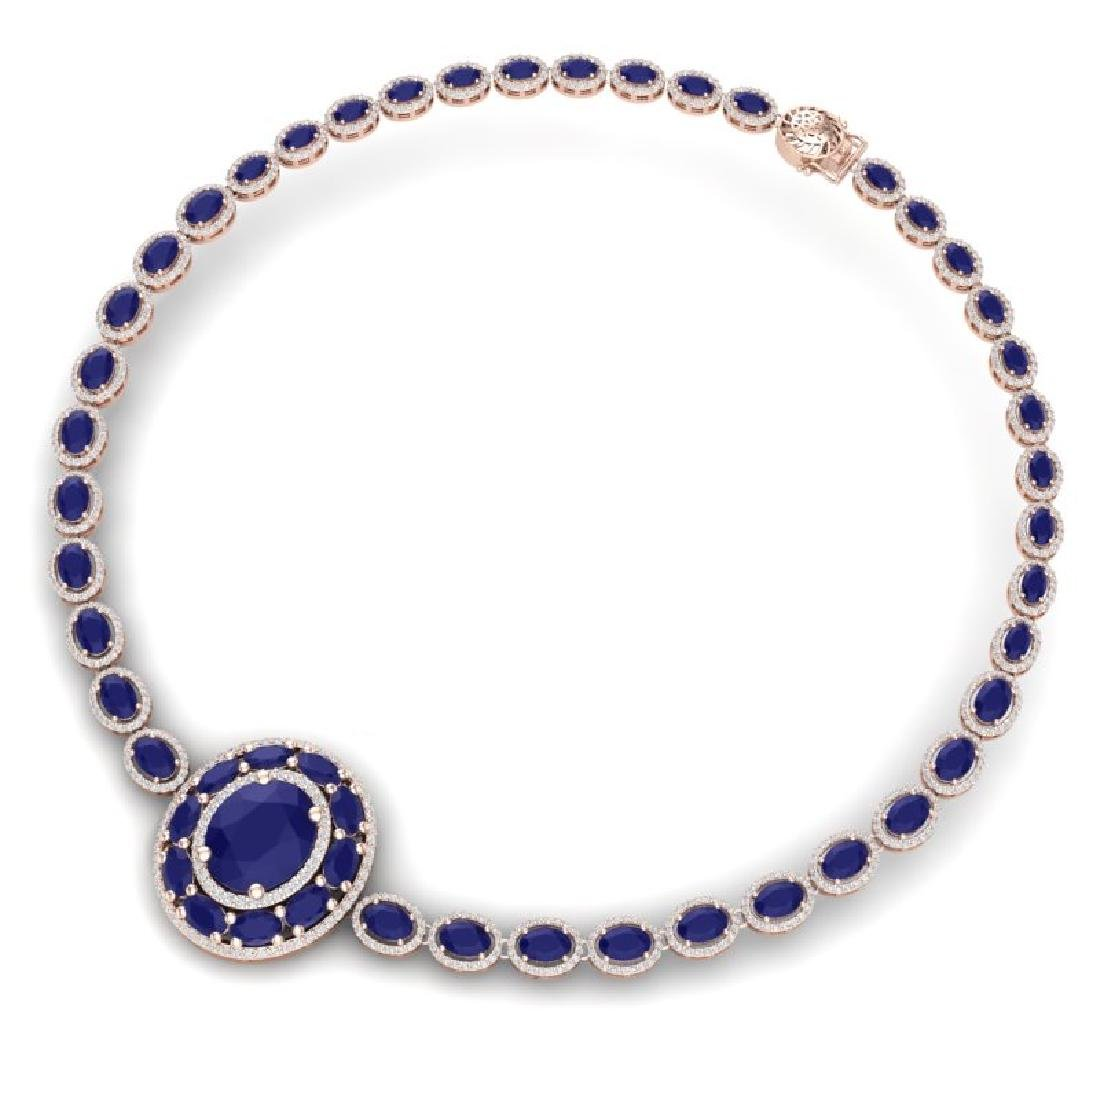 43.54 CTW Royalty Sapphire & VS Diamond Necklace 18K - 3